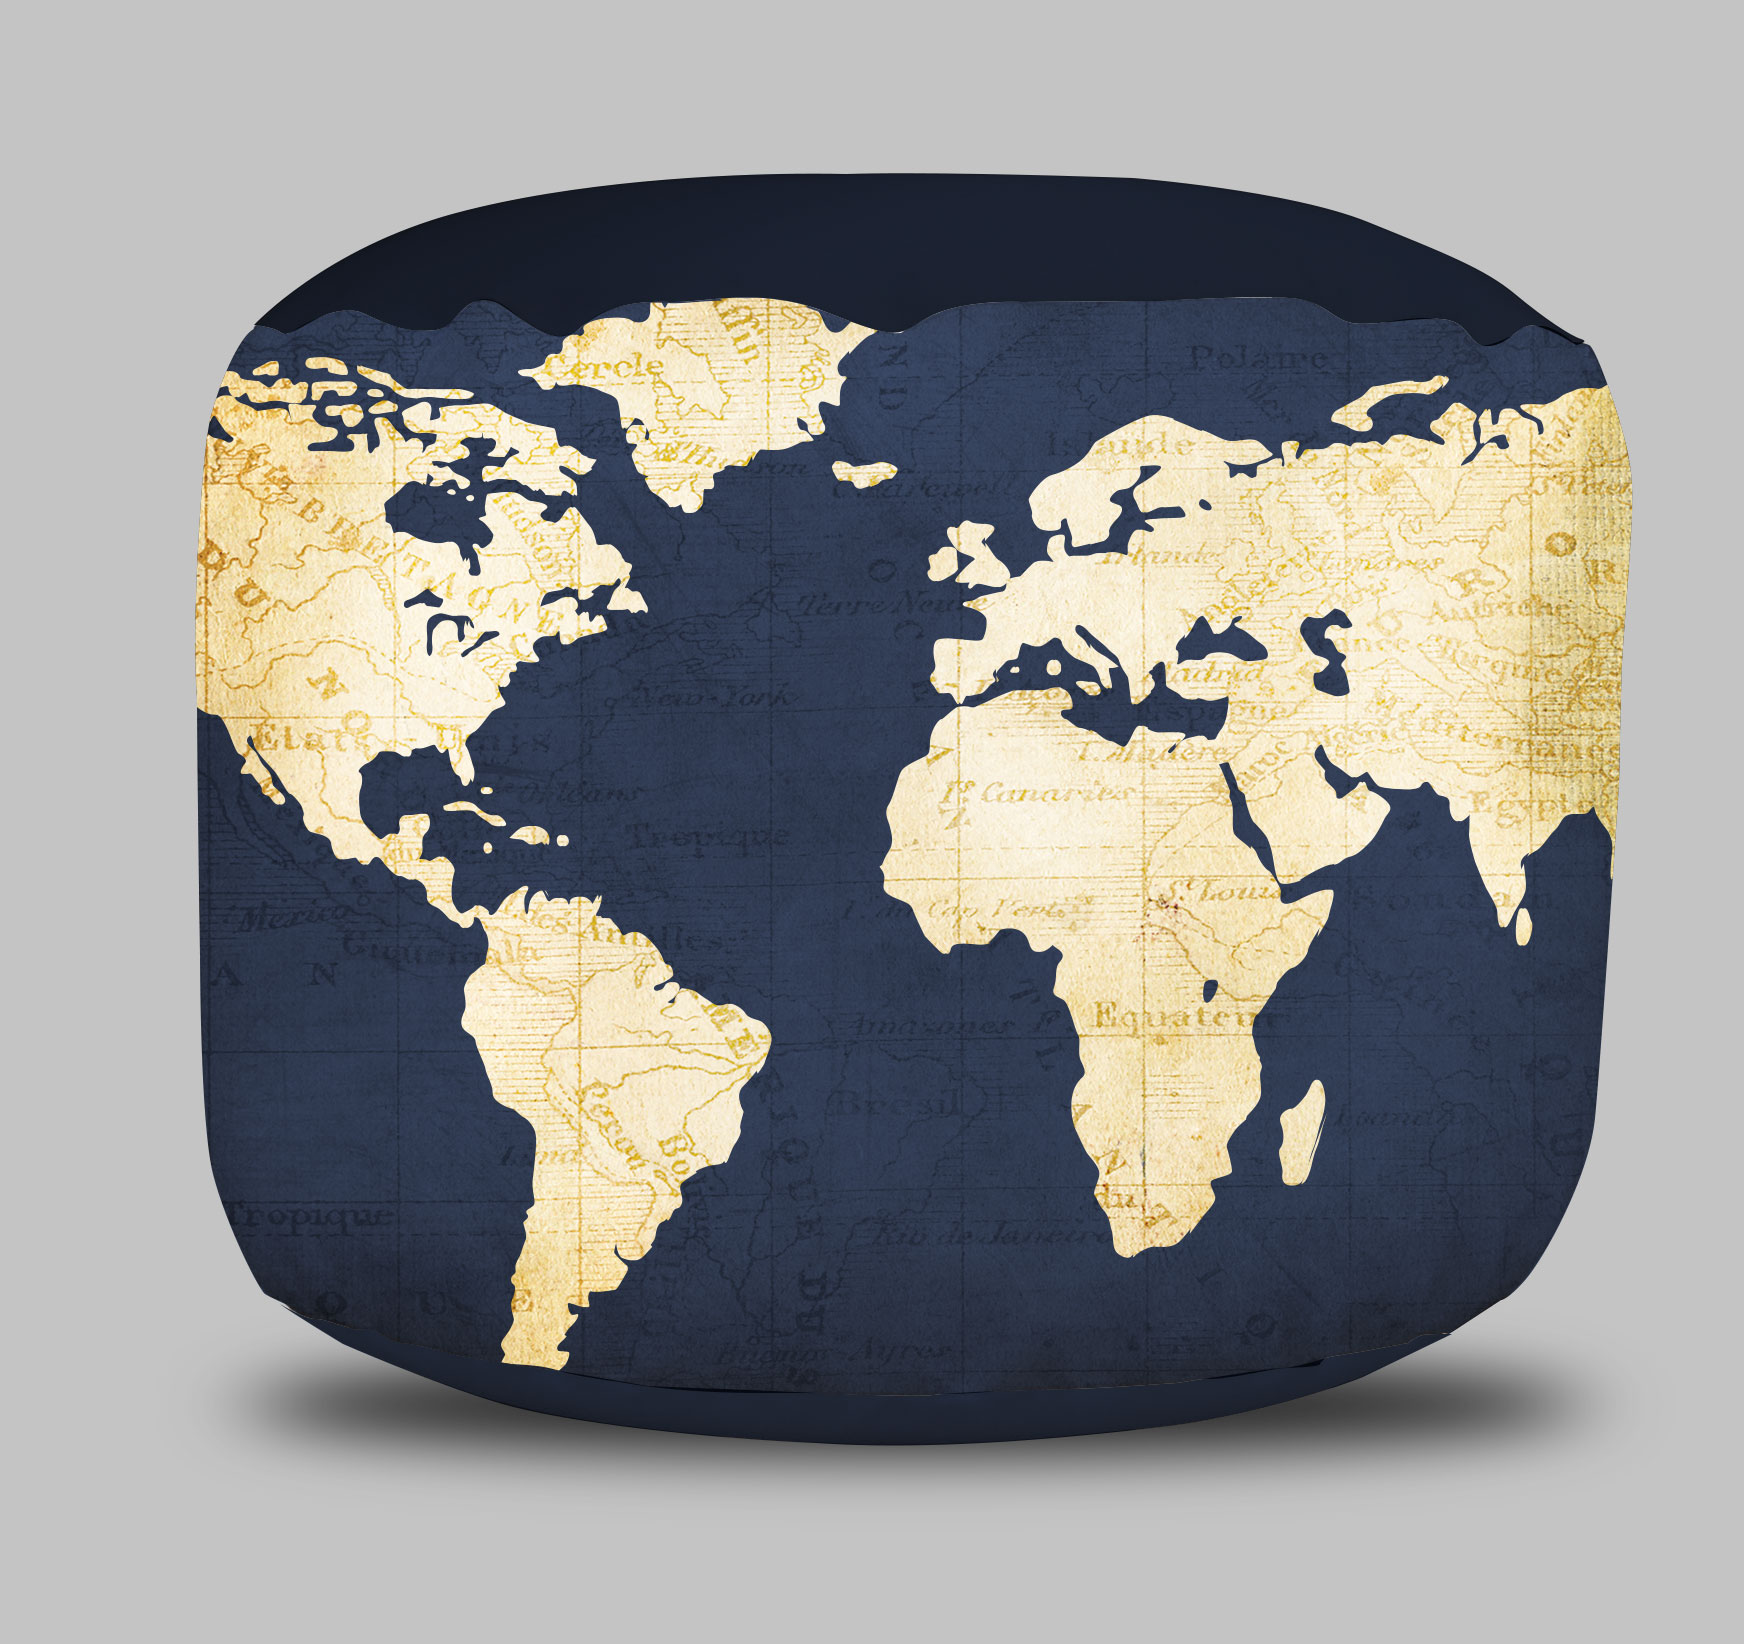 World map round pouf ottoman in navy blue project cottage world map round pouf ottoman gumiabroncs Images